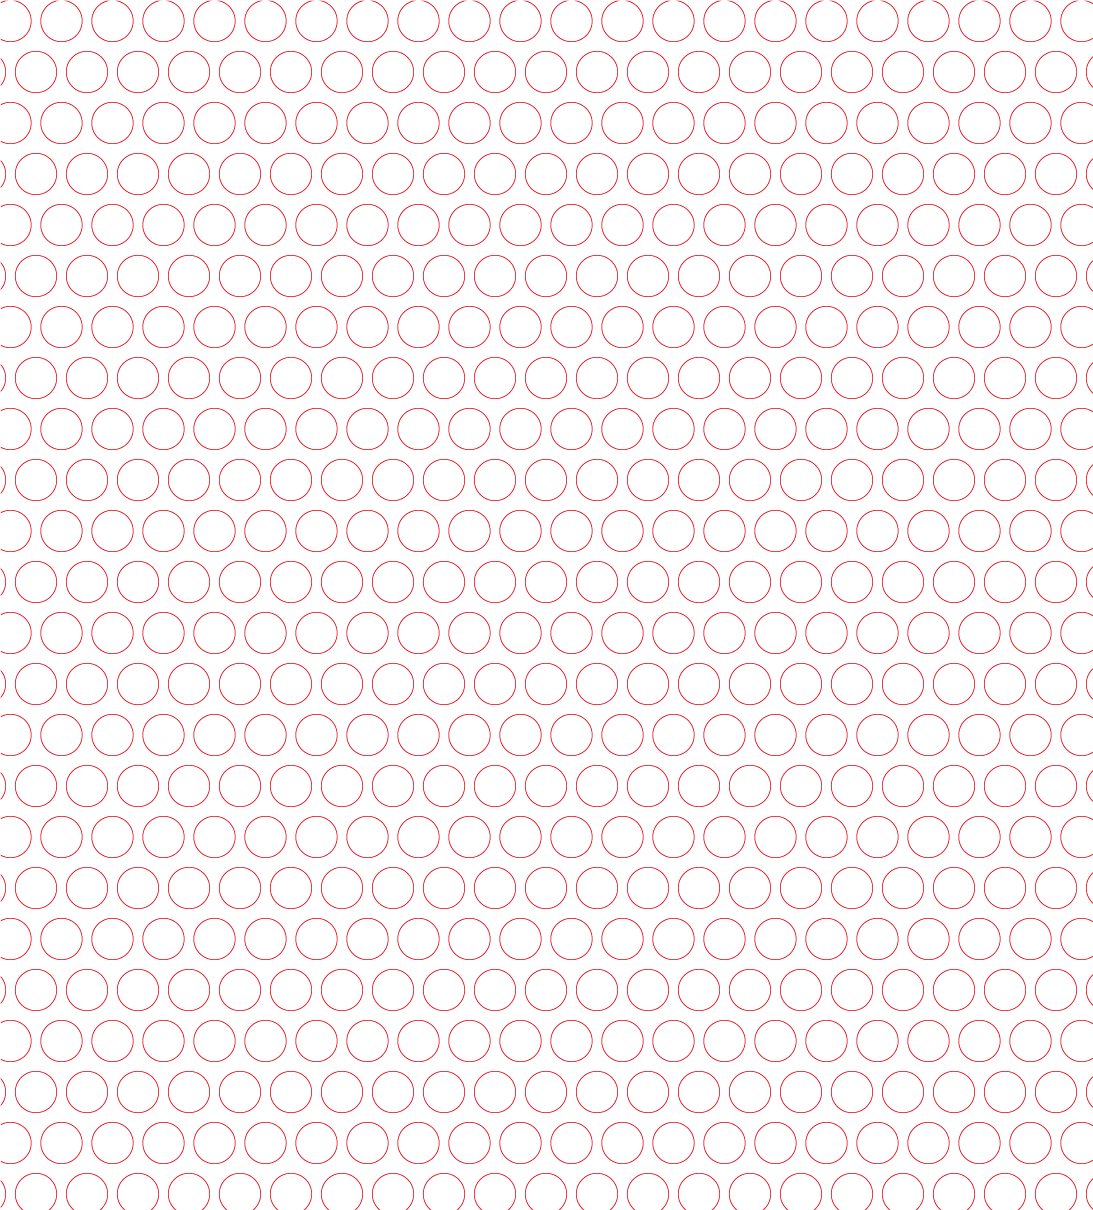 red large outlines, must have minimalistic pattern vector, seamless, ideal for concept works, presentations and cover designs, Illustrator templates